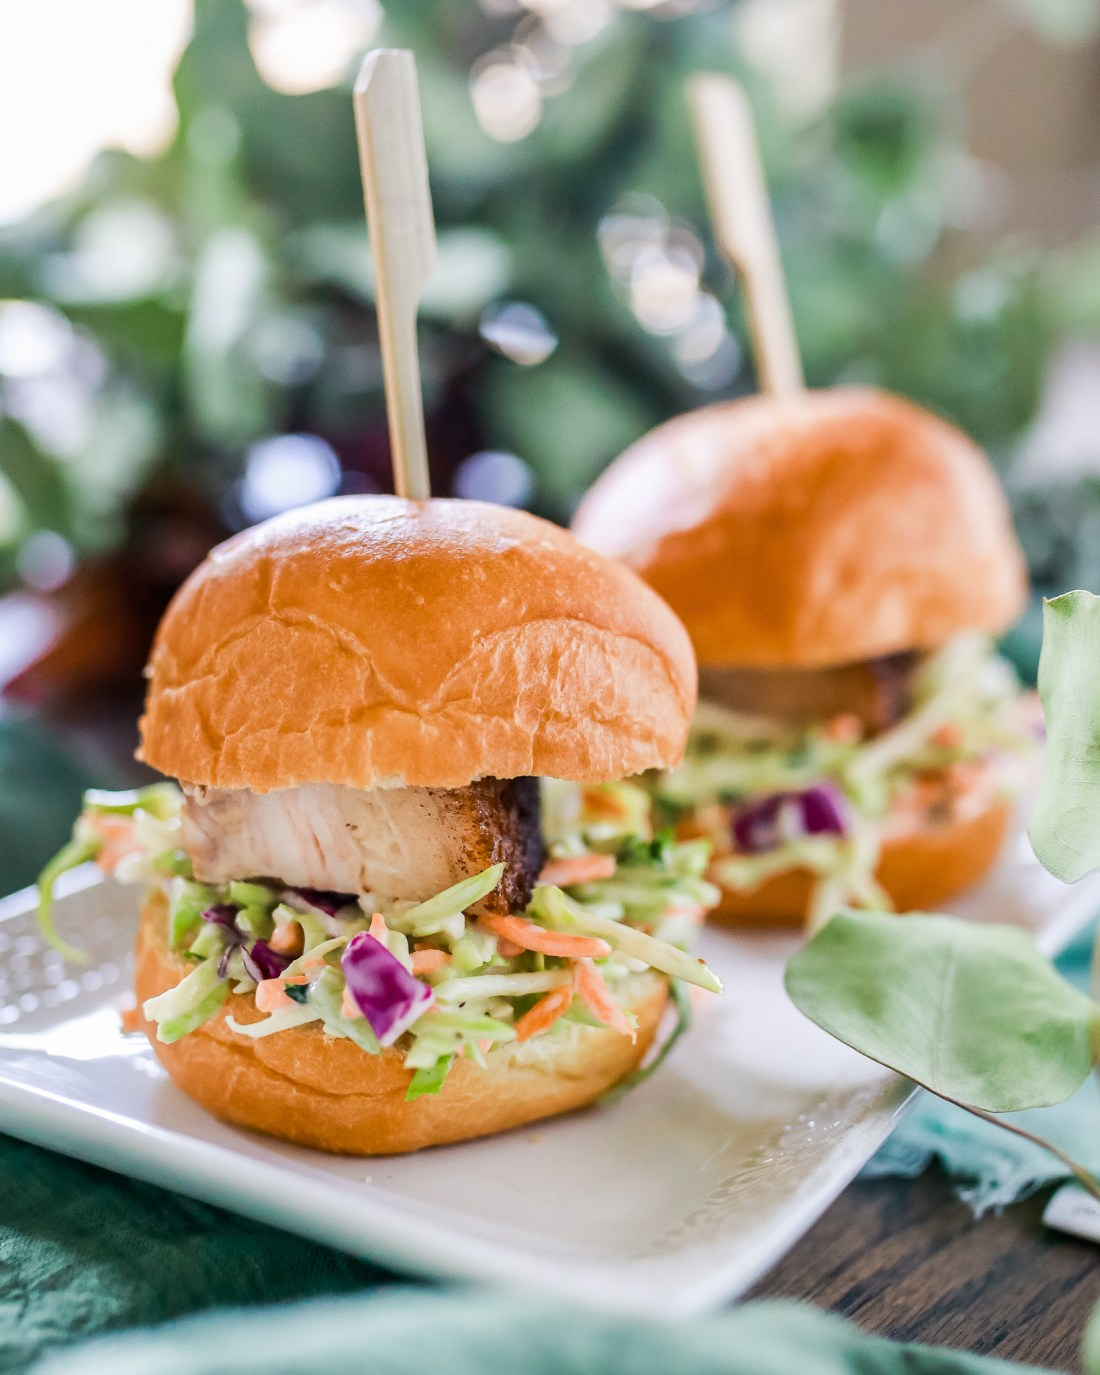 Sous Vide Pork Belly sliders recipe! AMAZINGNESS